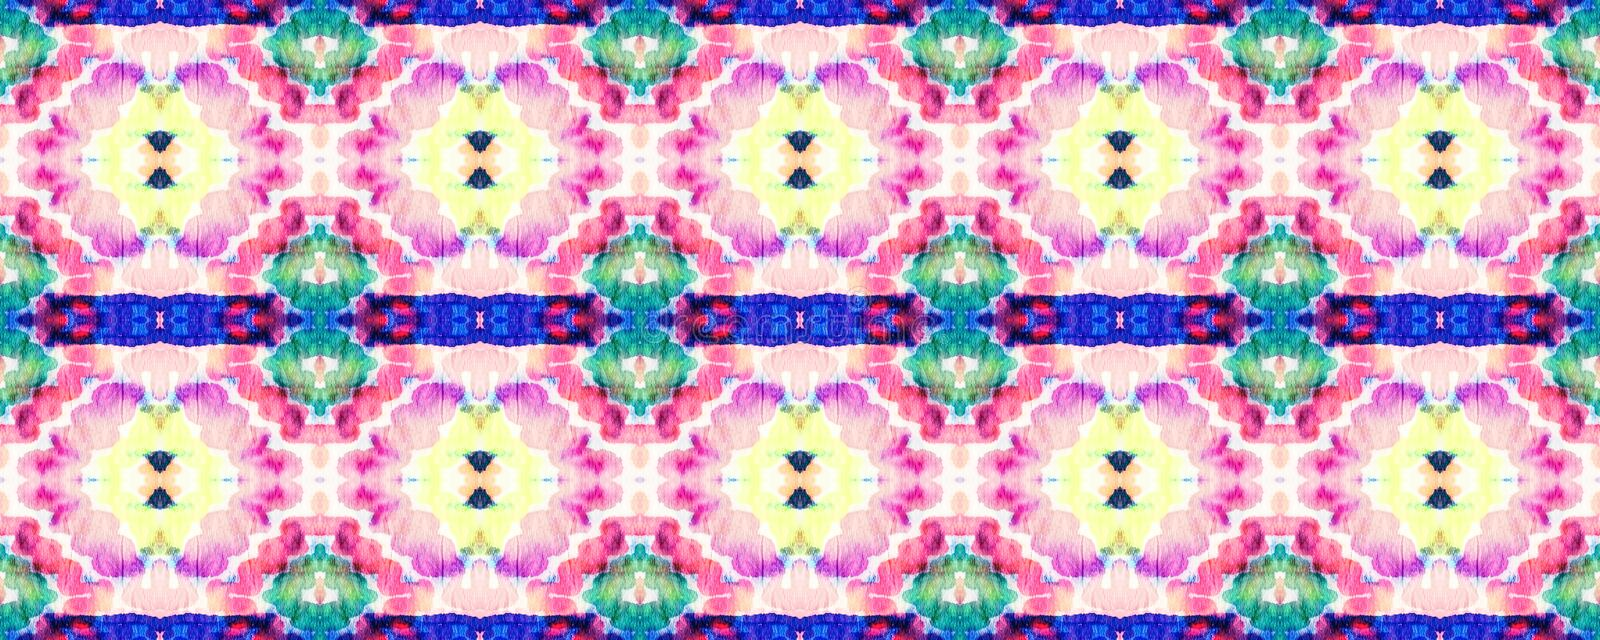 Ikat Seamless Pattern. Psychedelic Rainbow Aztec Geometric Textile Border Watercolor Hand Drawn Textile. Creative Navajo Ikat Background. Allover Organic stock photography